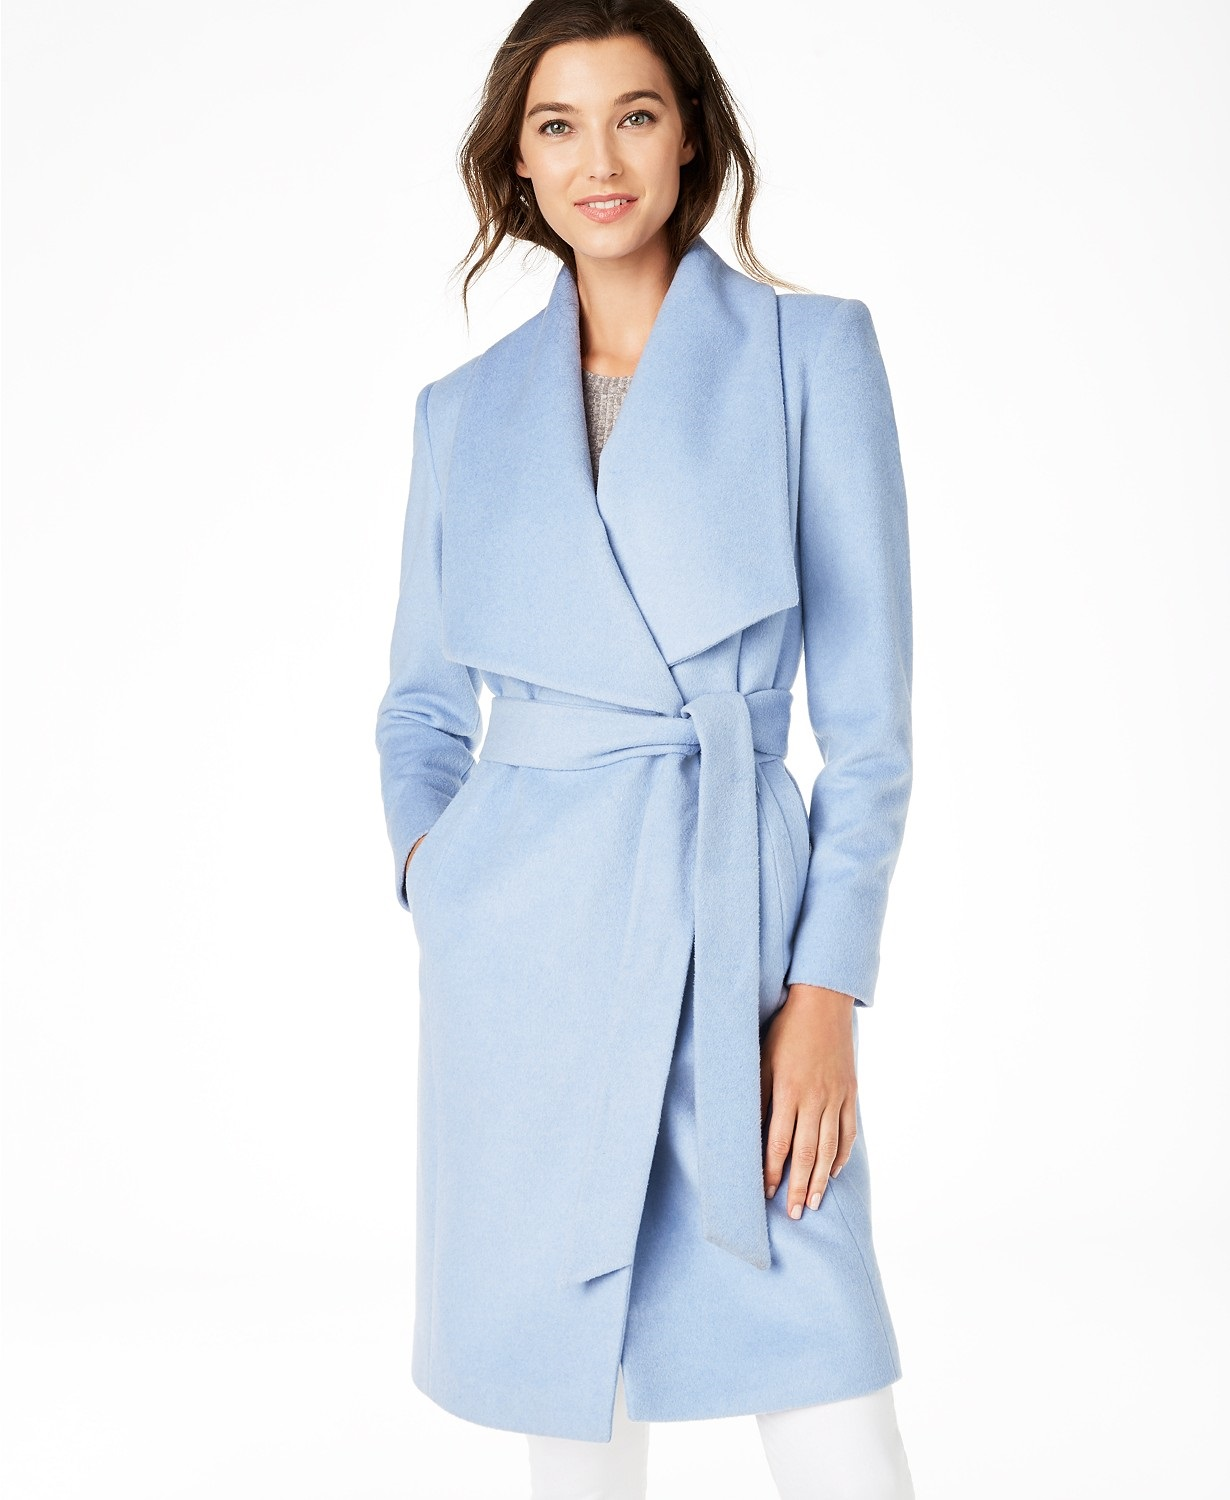 Monochromatic style, monochromatic outfits, pale blue outfit, Cole Haan ice blue wrap coat